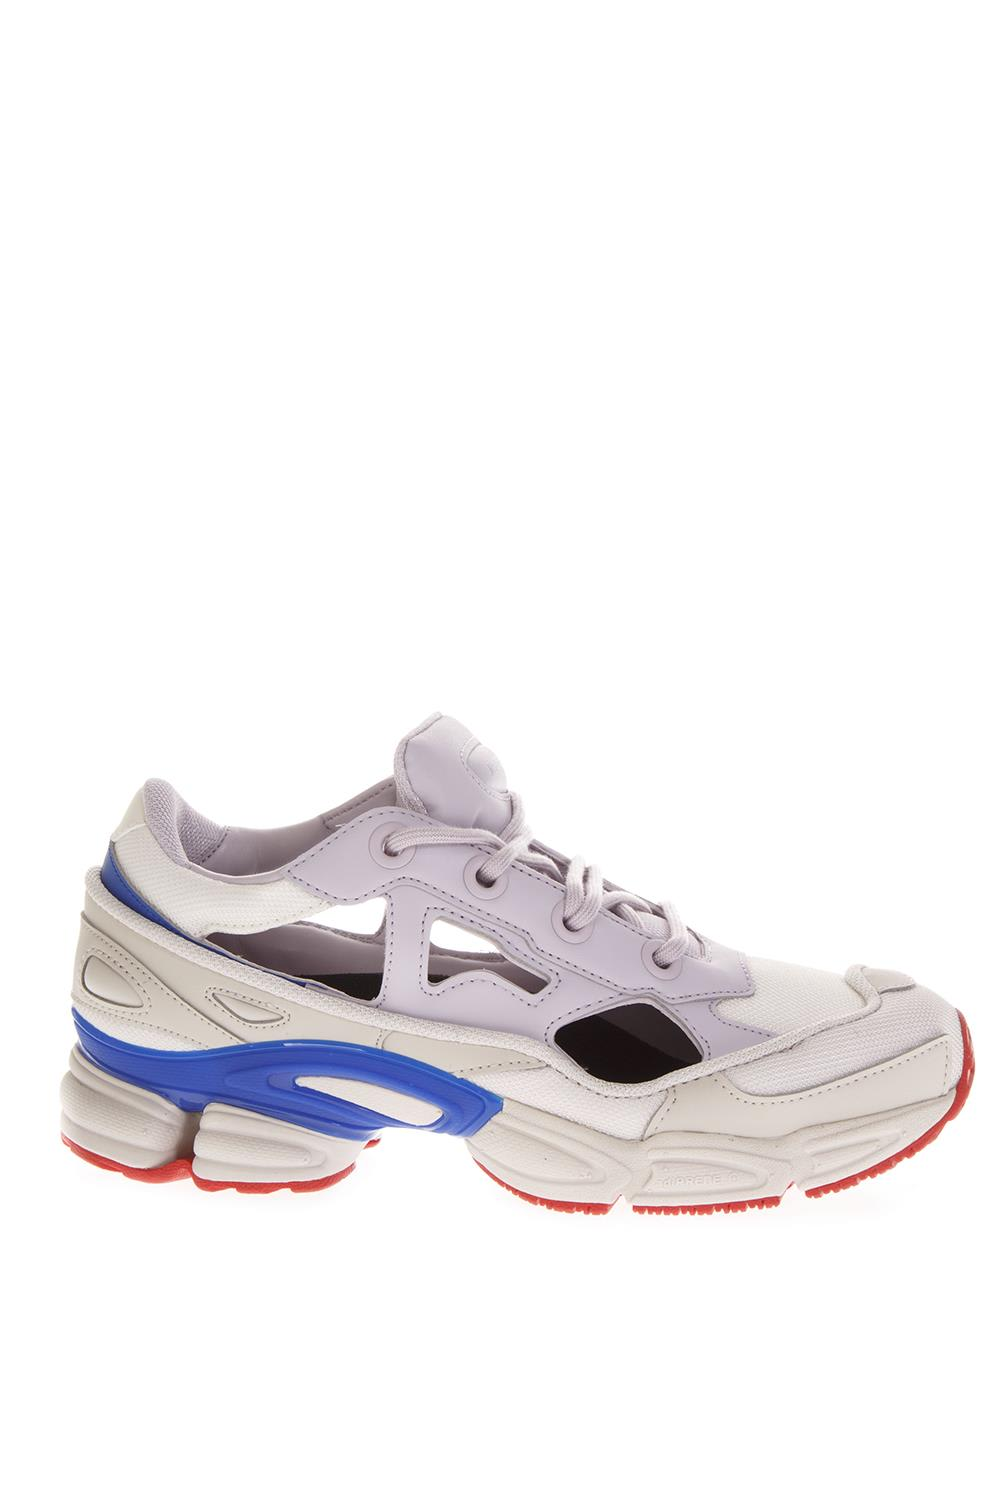 the latest 80a40 8ca8c Adidas By Raf Simons White Replicant Ozweego Sneakers By Raf Simons